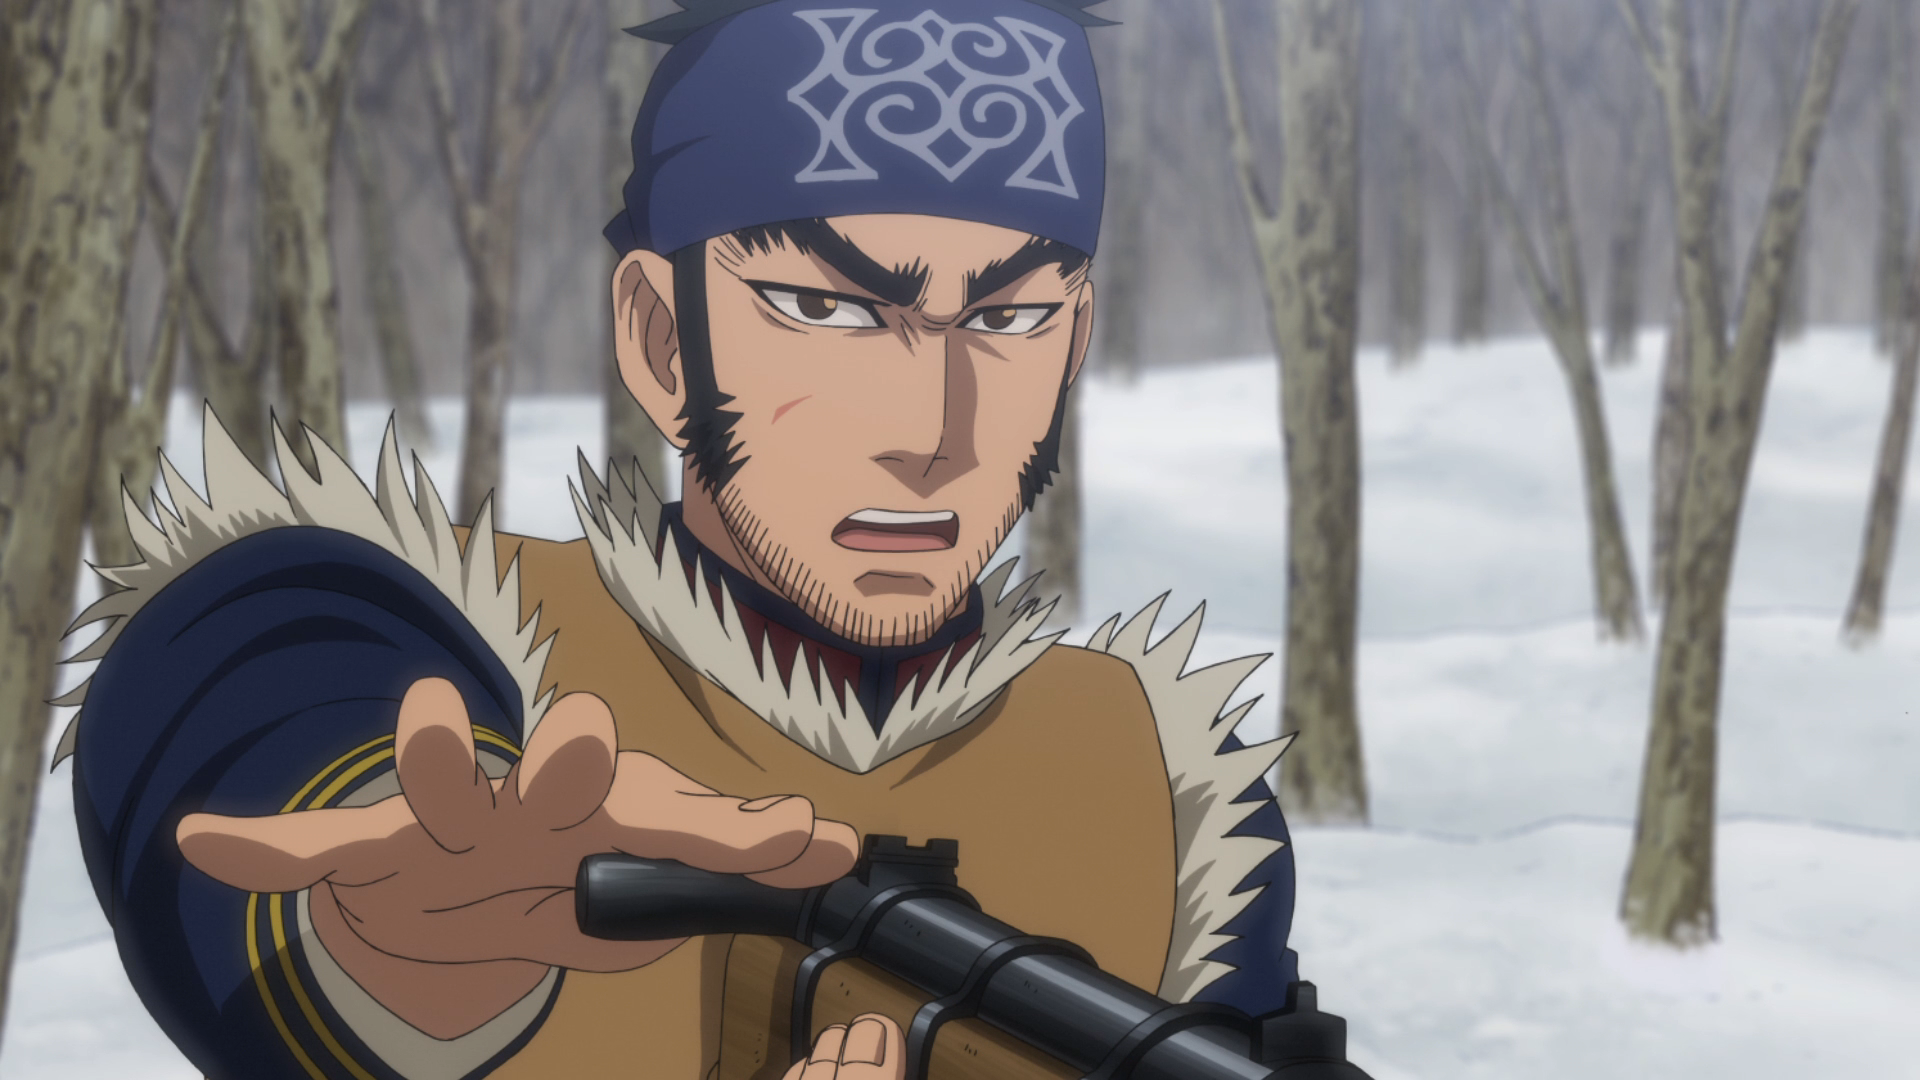 Golden Kamuy Episodes 0809 Anime Review Anime reviews